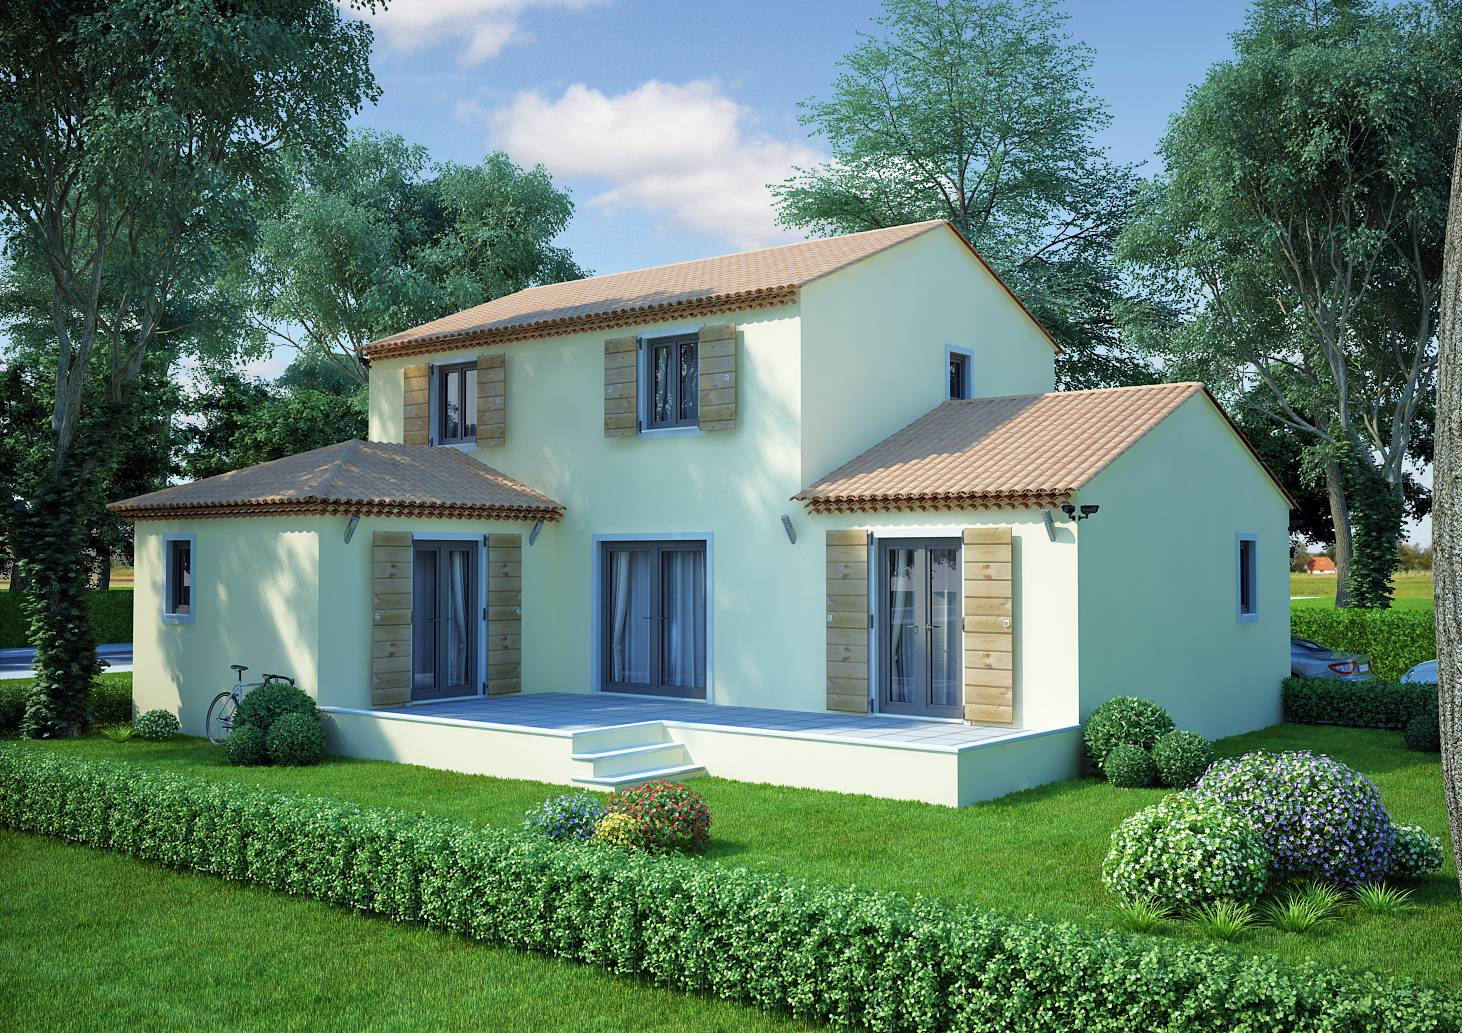 Maison en l de 130m2 lavande traditionnel azur logement for De maison en maison